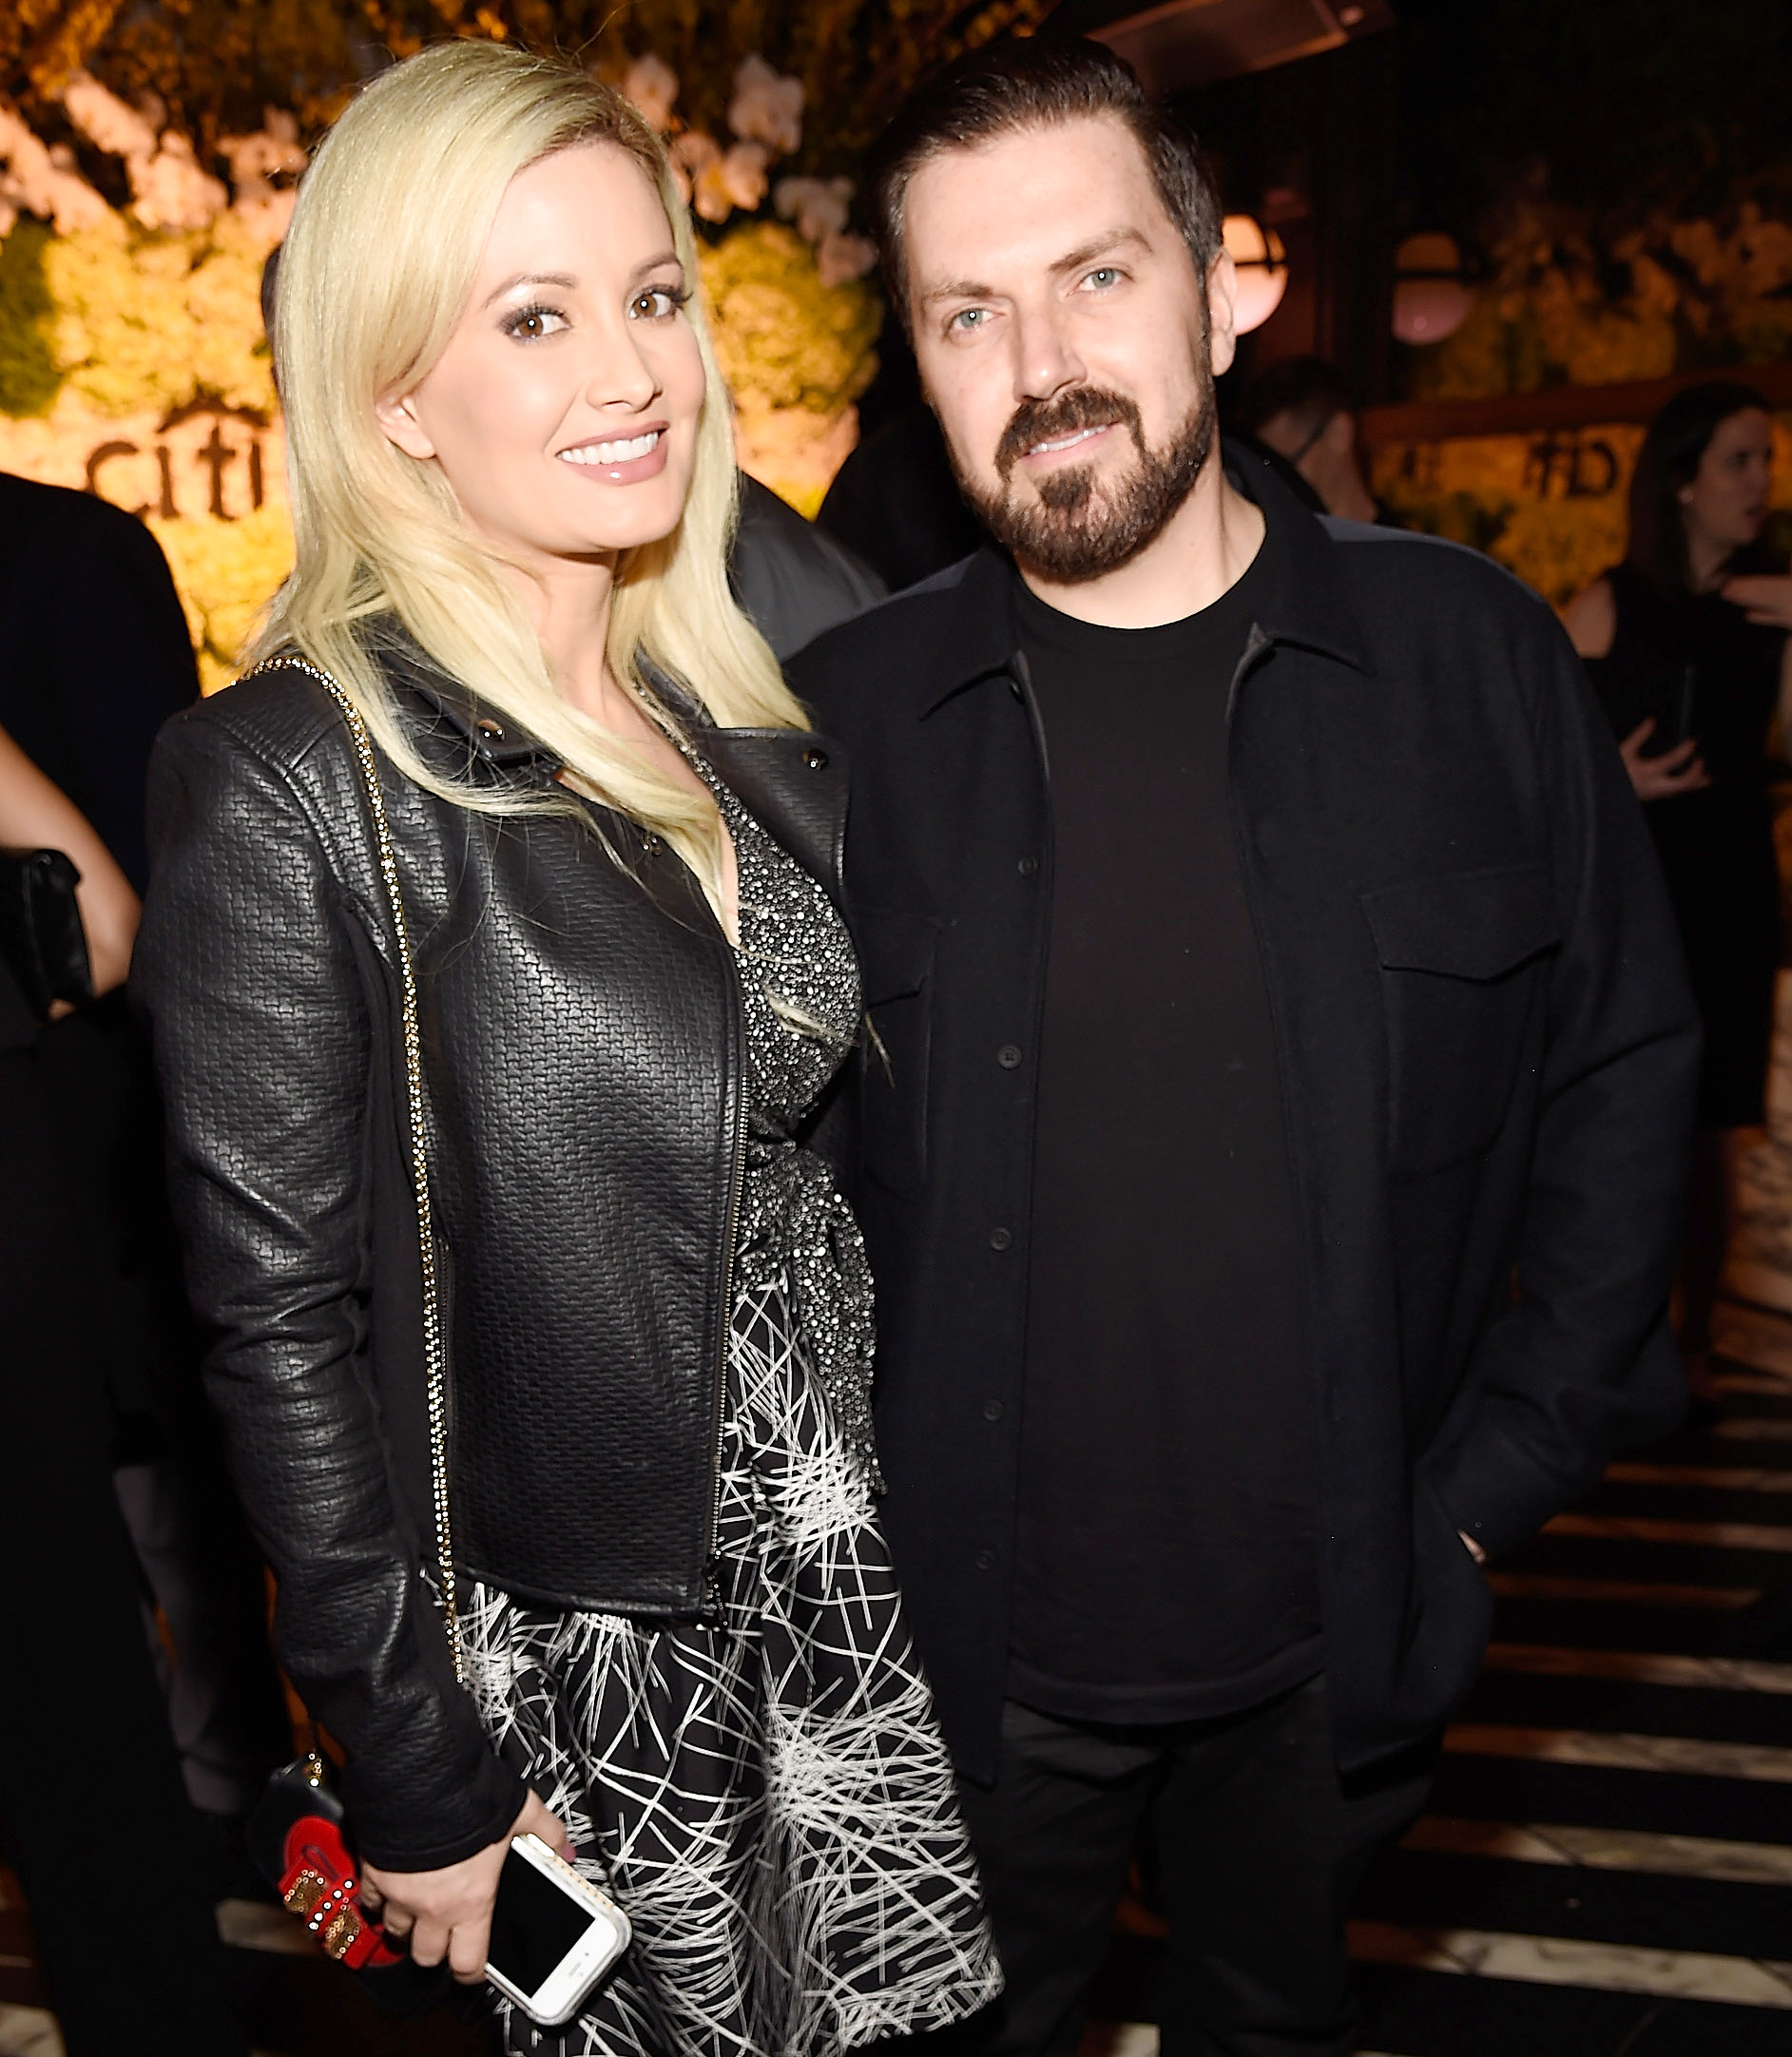 Holly Madison and Pasquale Rotella attend the Billboard Power 100 Celebration in 2017